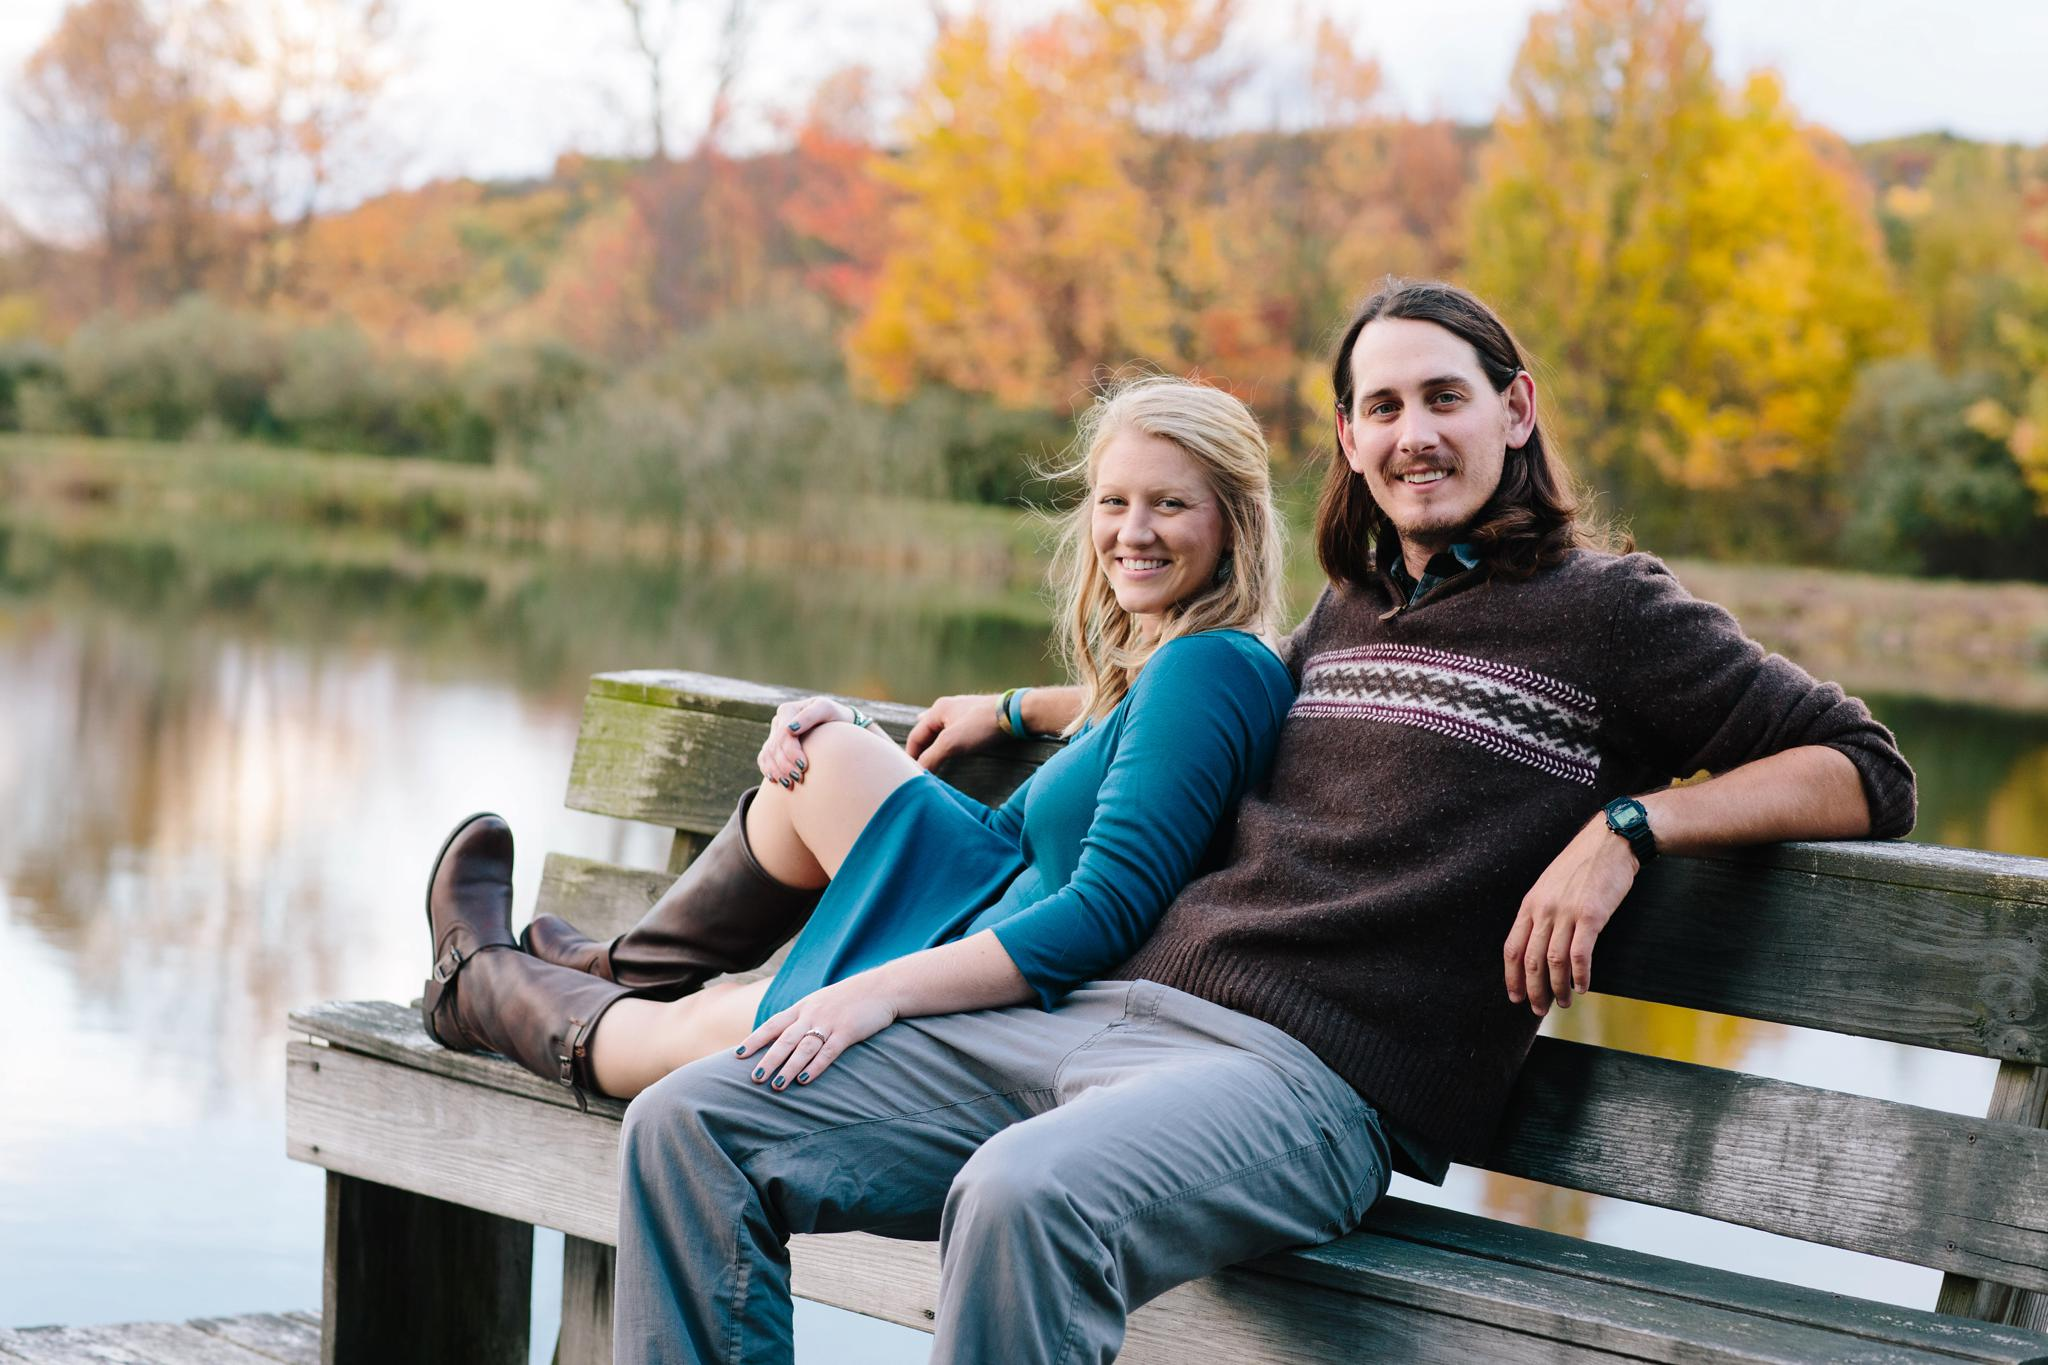 tukhannock_pa_engagement_photographer_8293.jpg